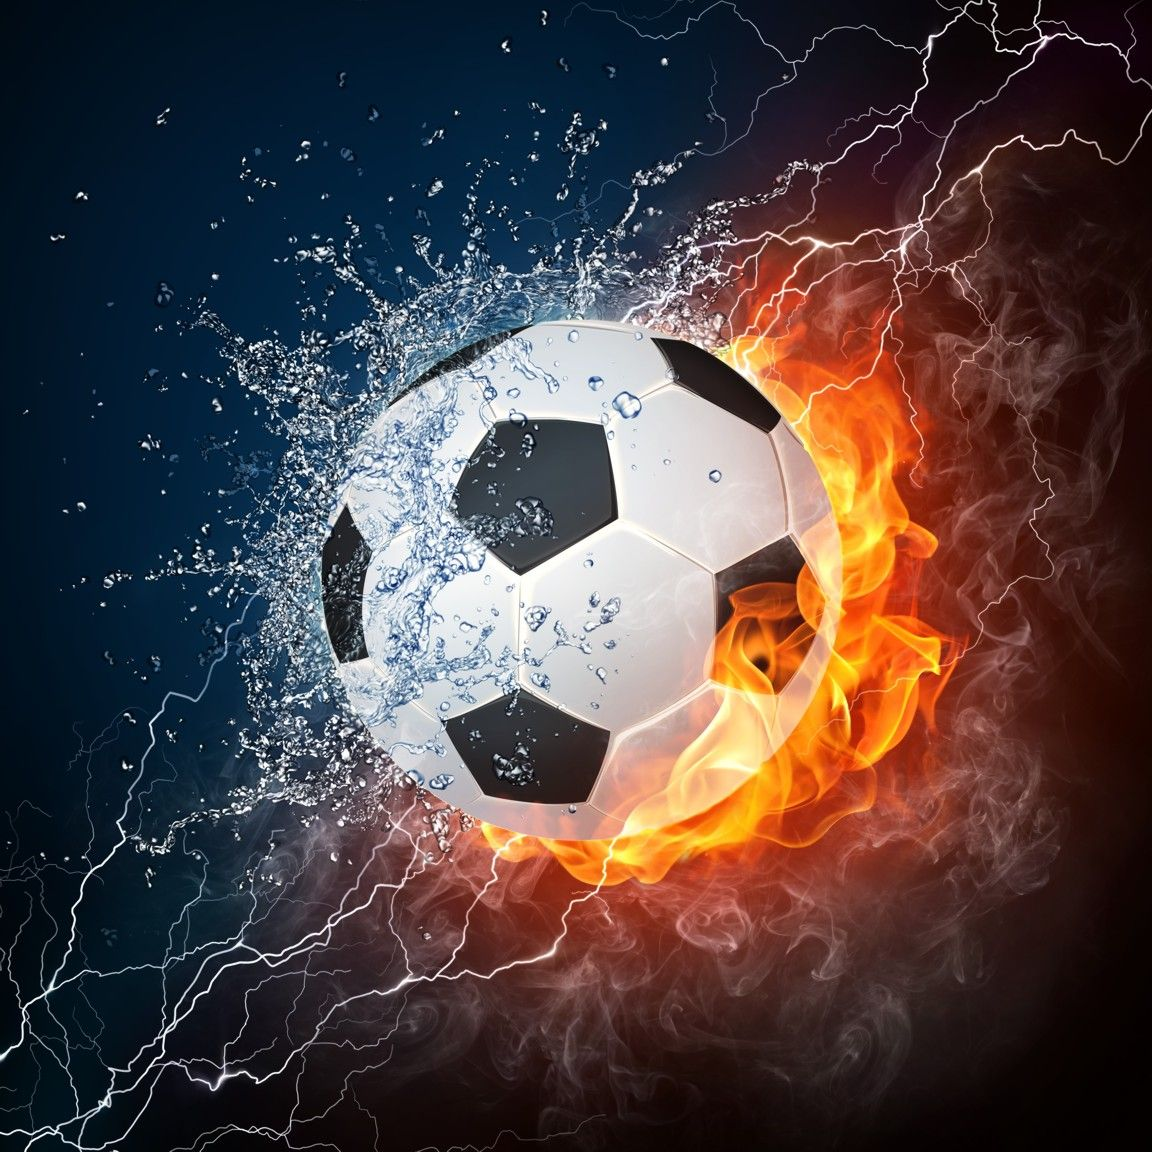 Soccer Ball Water And Fire Backdrop Soccer Wall Art Soccer Ball Soccer Art